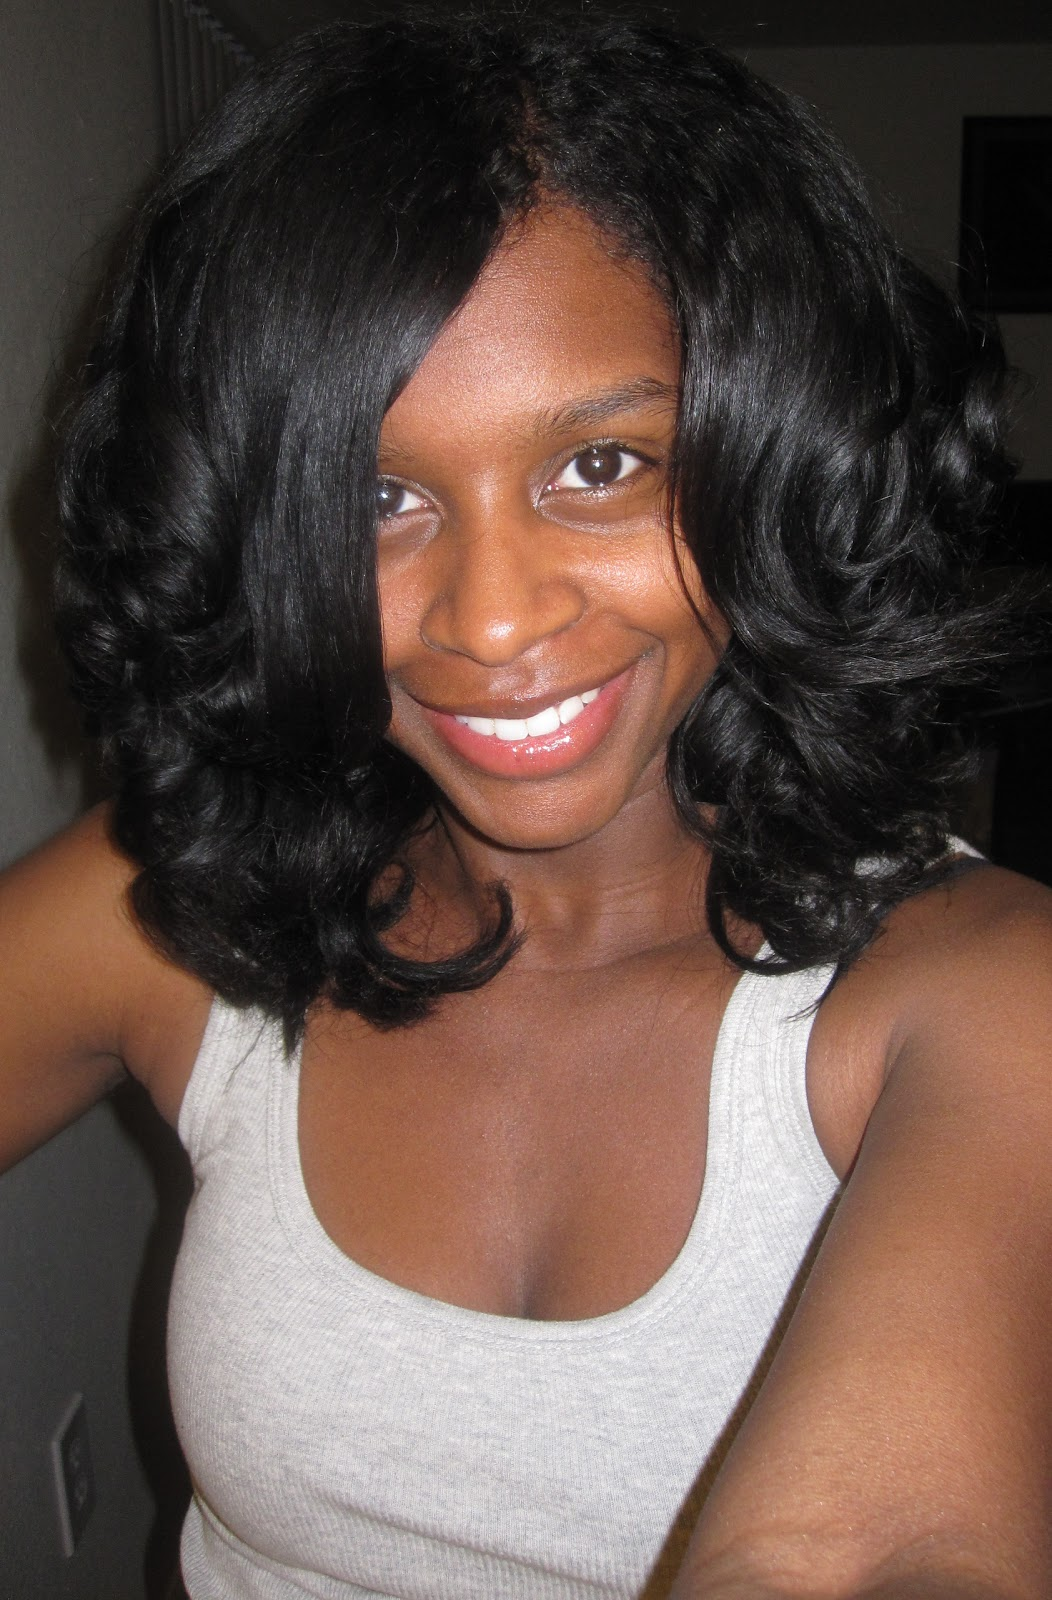 Roller Set Wrap Natural Hair http://www.curlynikki.com/2011/04/mahoganycurls-roller-set-how-to.html